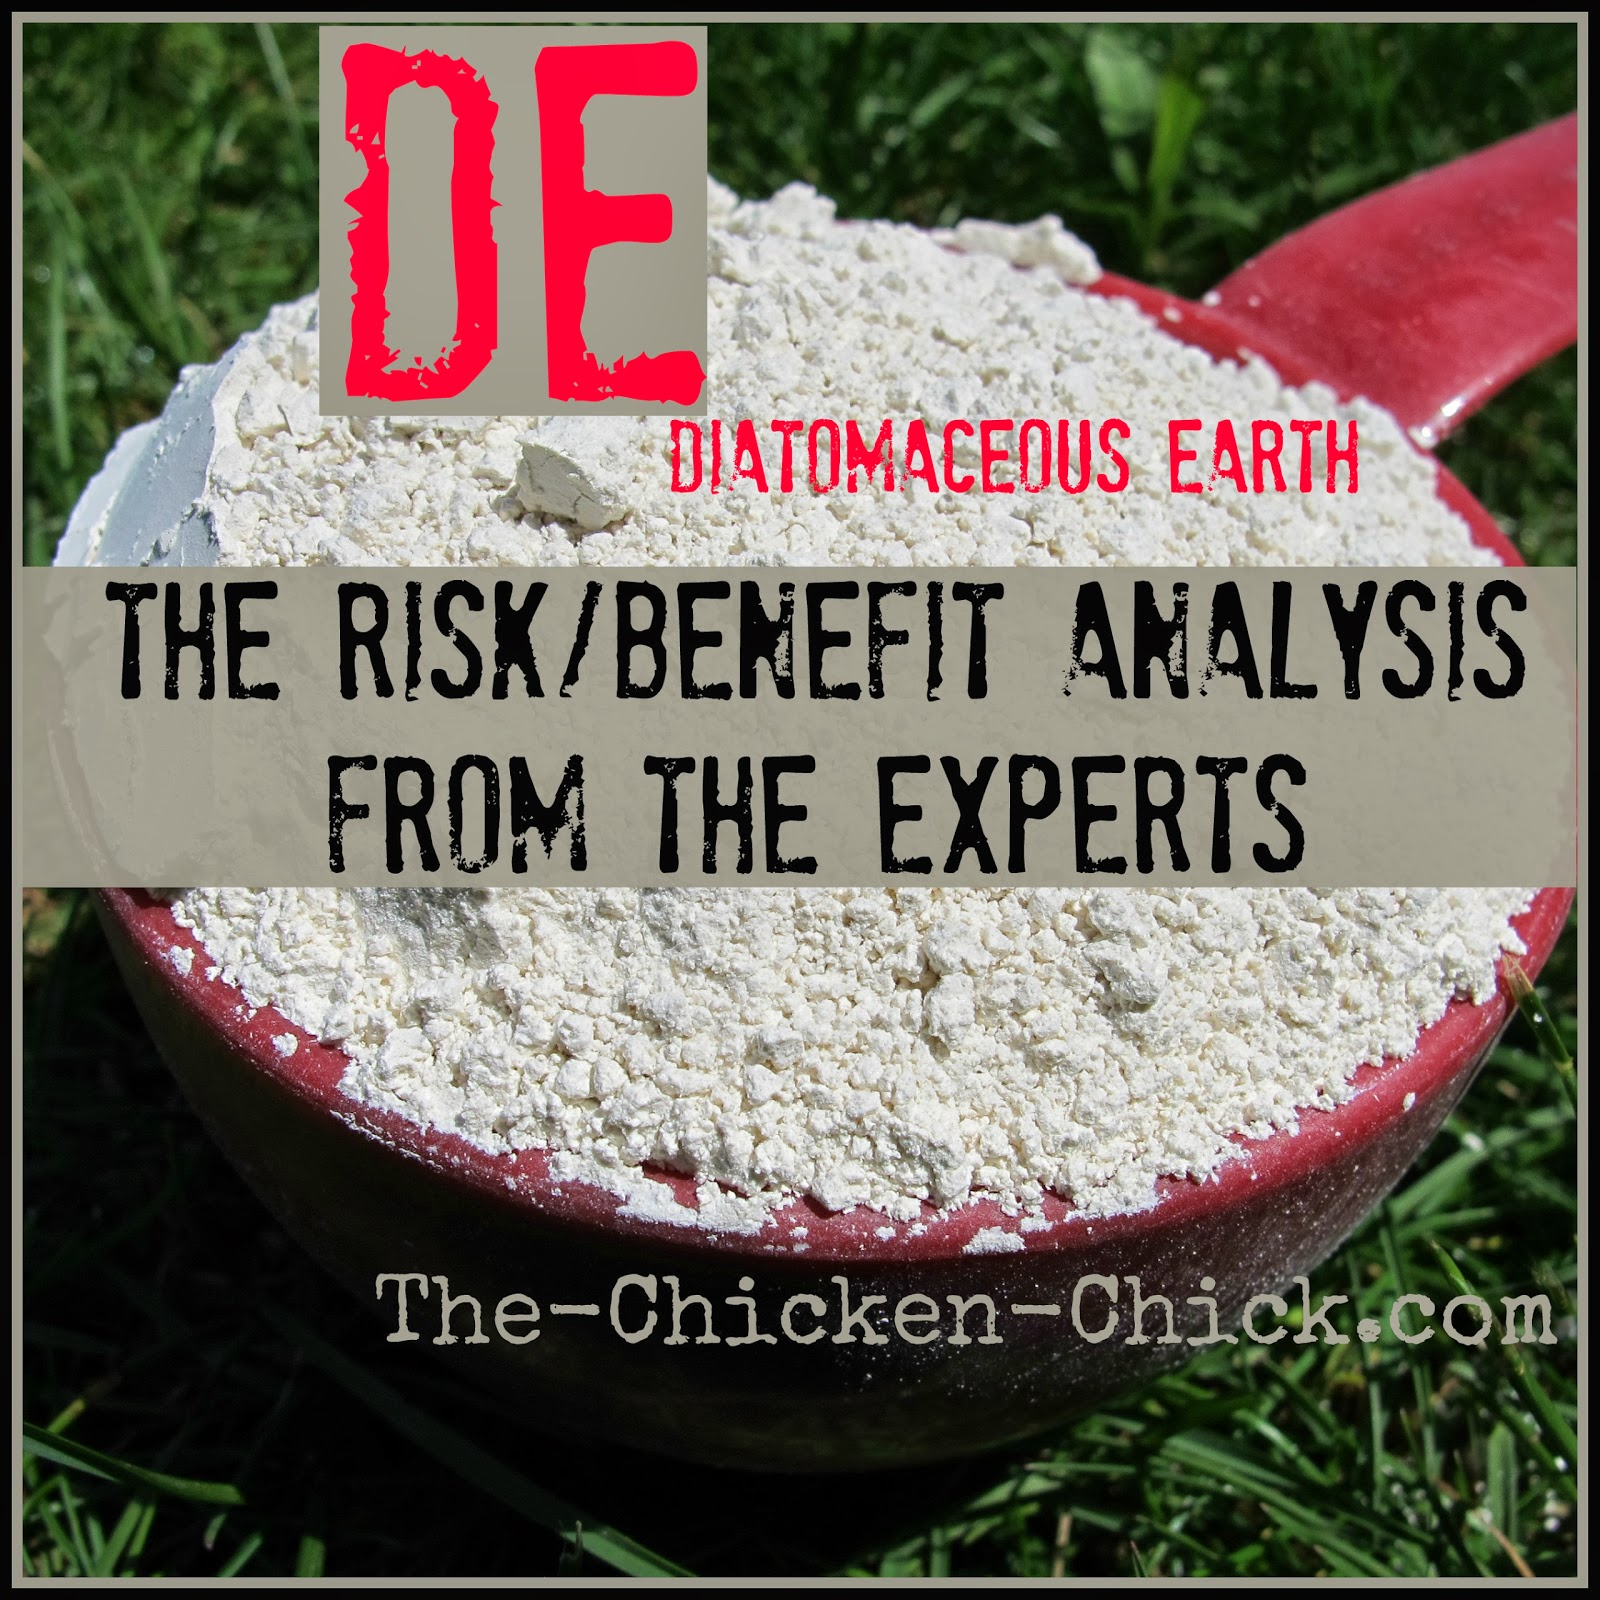 how to take diatomaceous earth